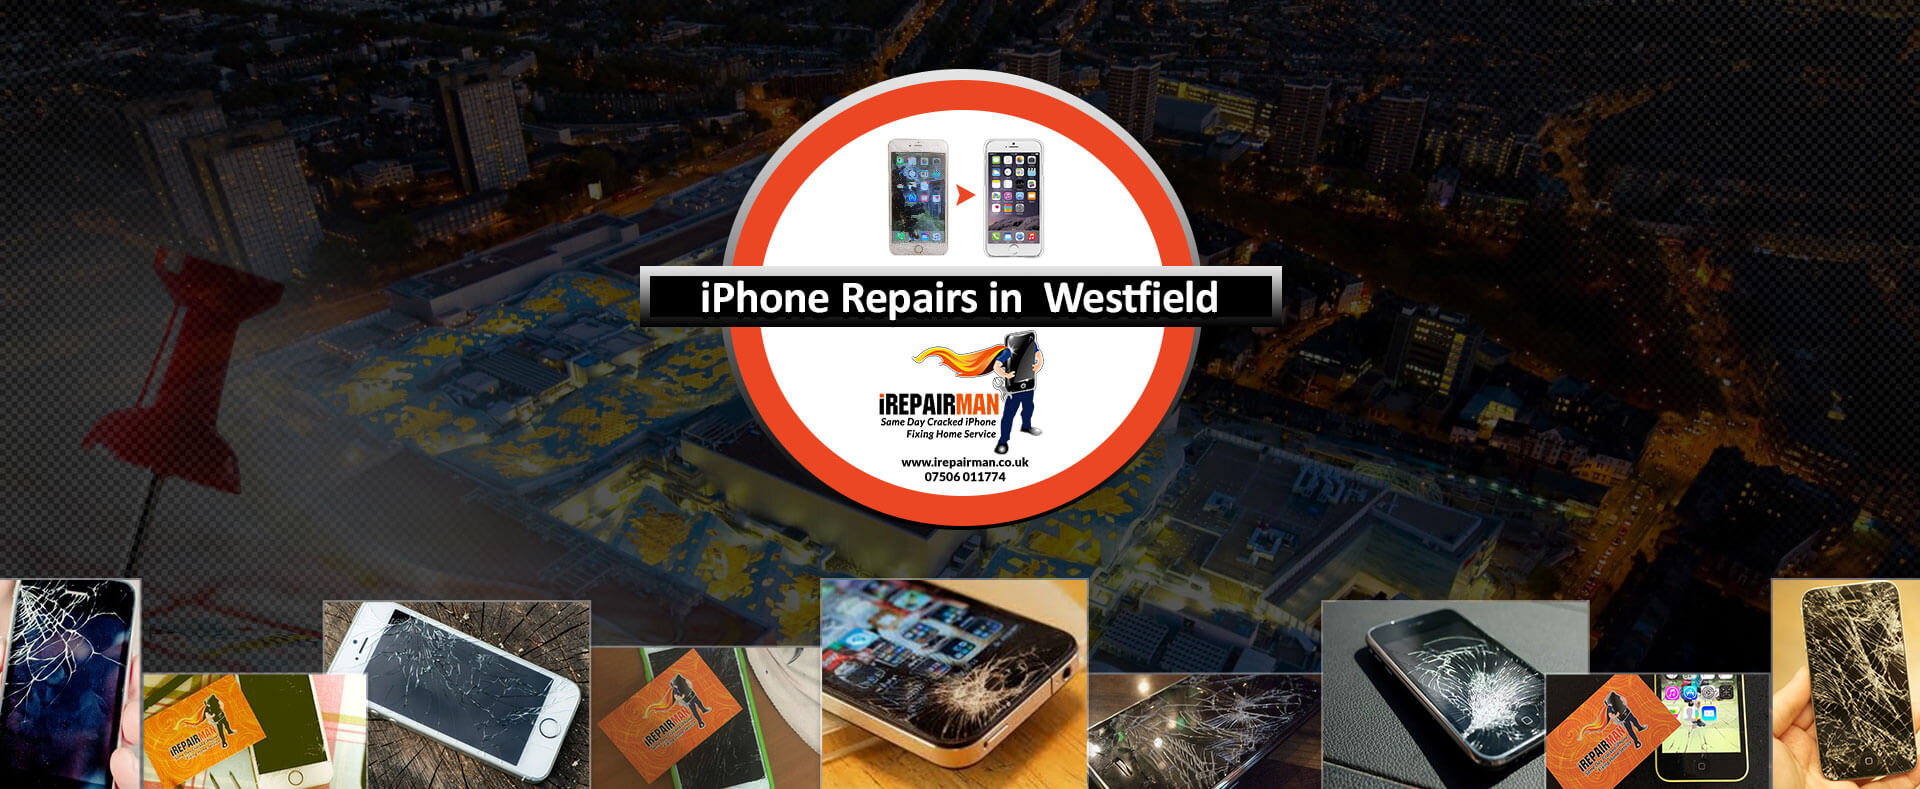 iPhone Repairs in Westfield